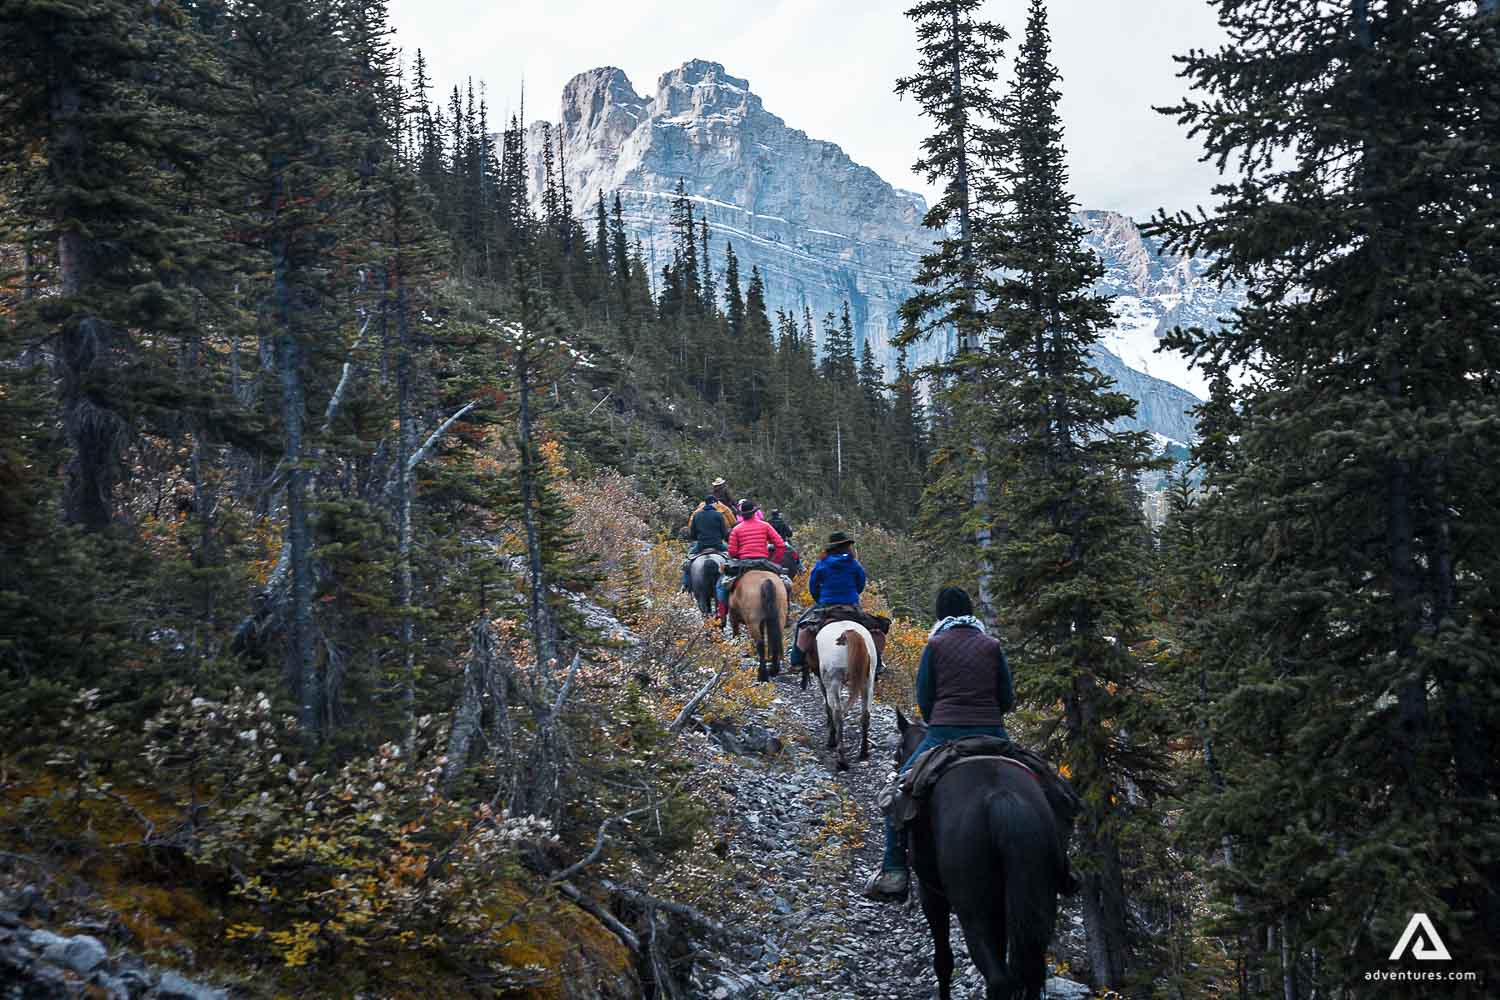 Uphill horse riding